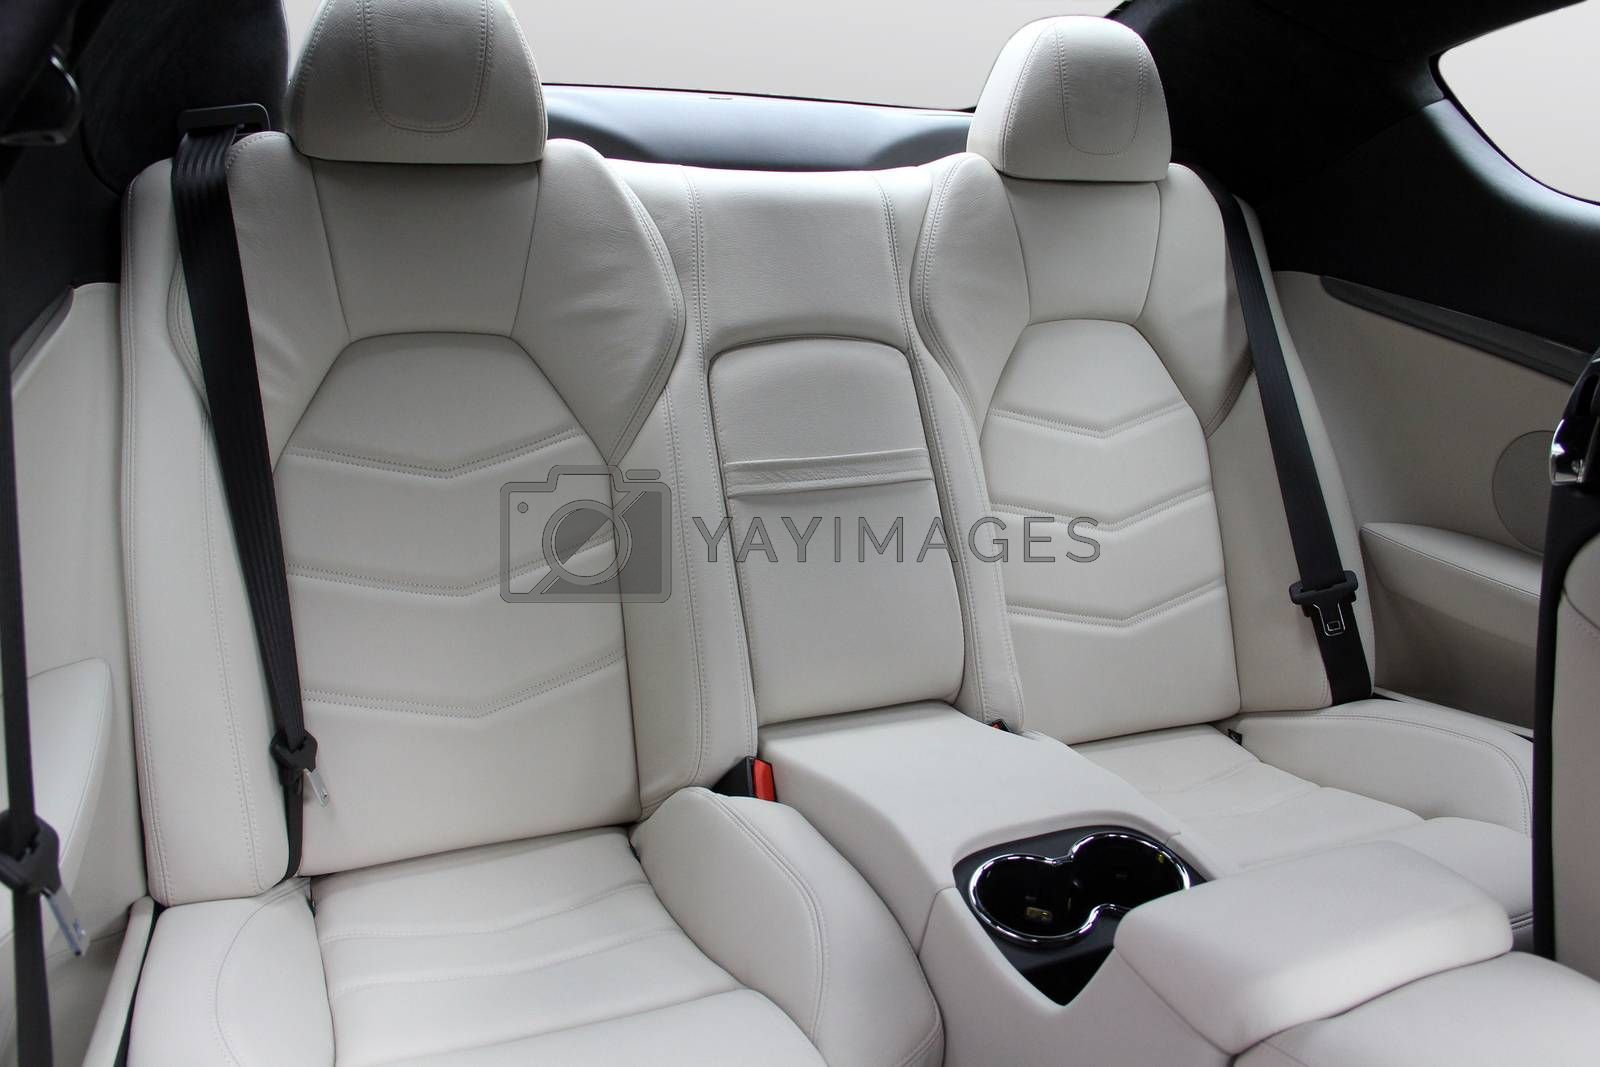 Royalty free image of The white rear seat of a luxury sports car by aselsa